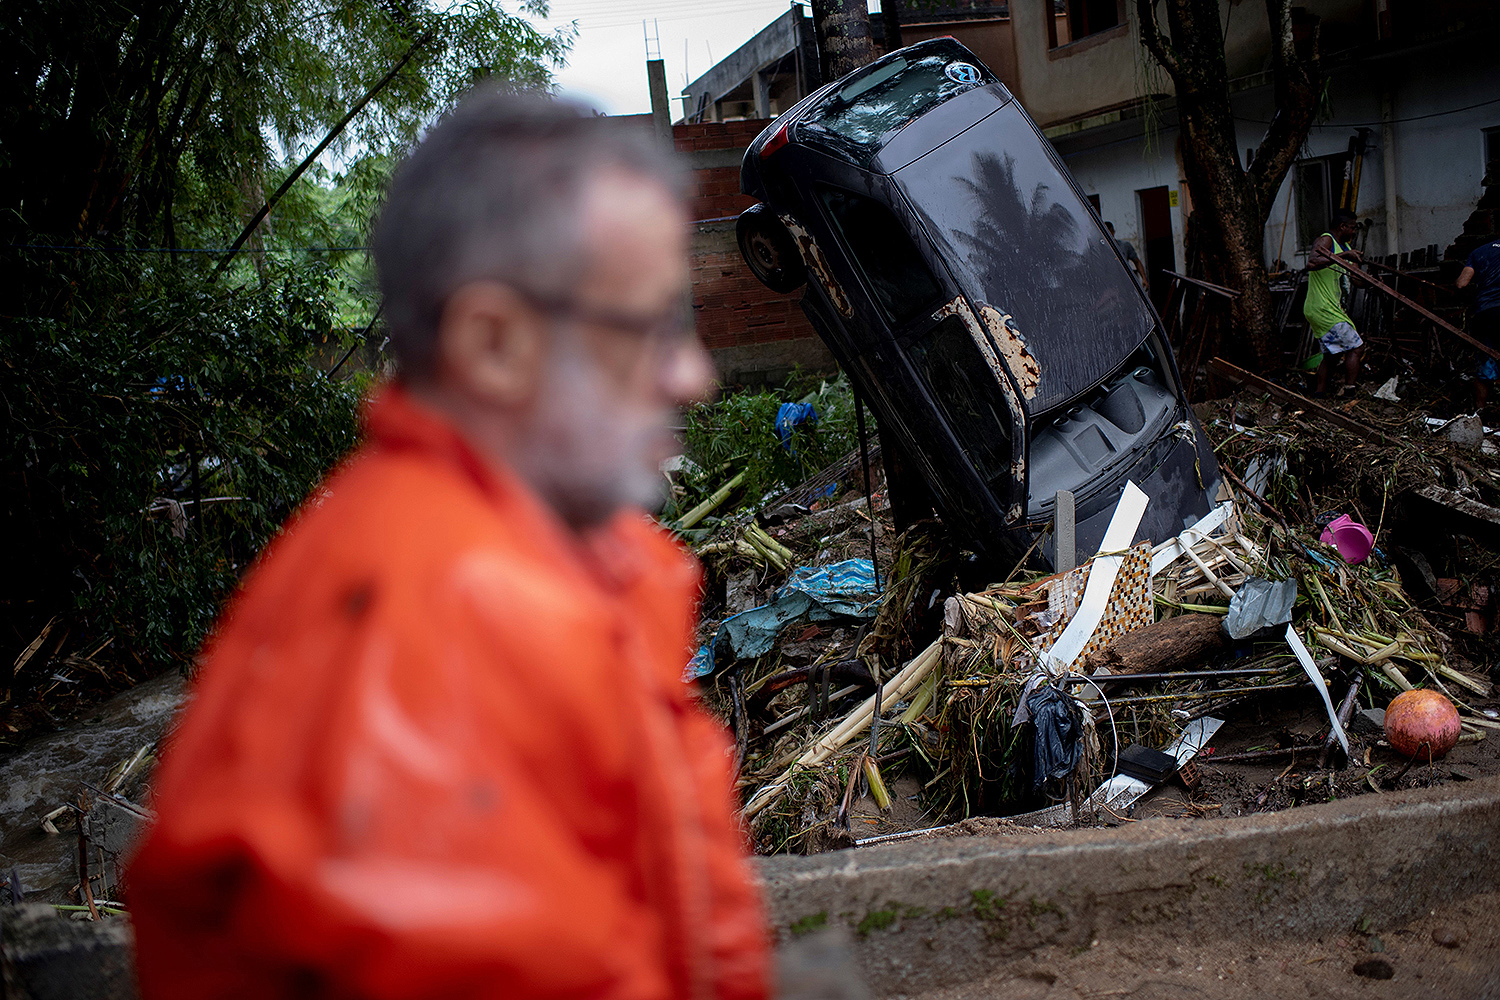 A man walks past damaged cars in the suburbs of Rio de Janeiro on March 2 following heavy rains. Downpours have swamped the area, leaving more than two dozen dead and thousands displaced, with more rain in the forecast. Mauro Pimentel/AFP via Getty Images